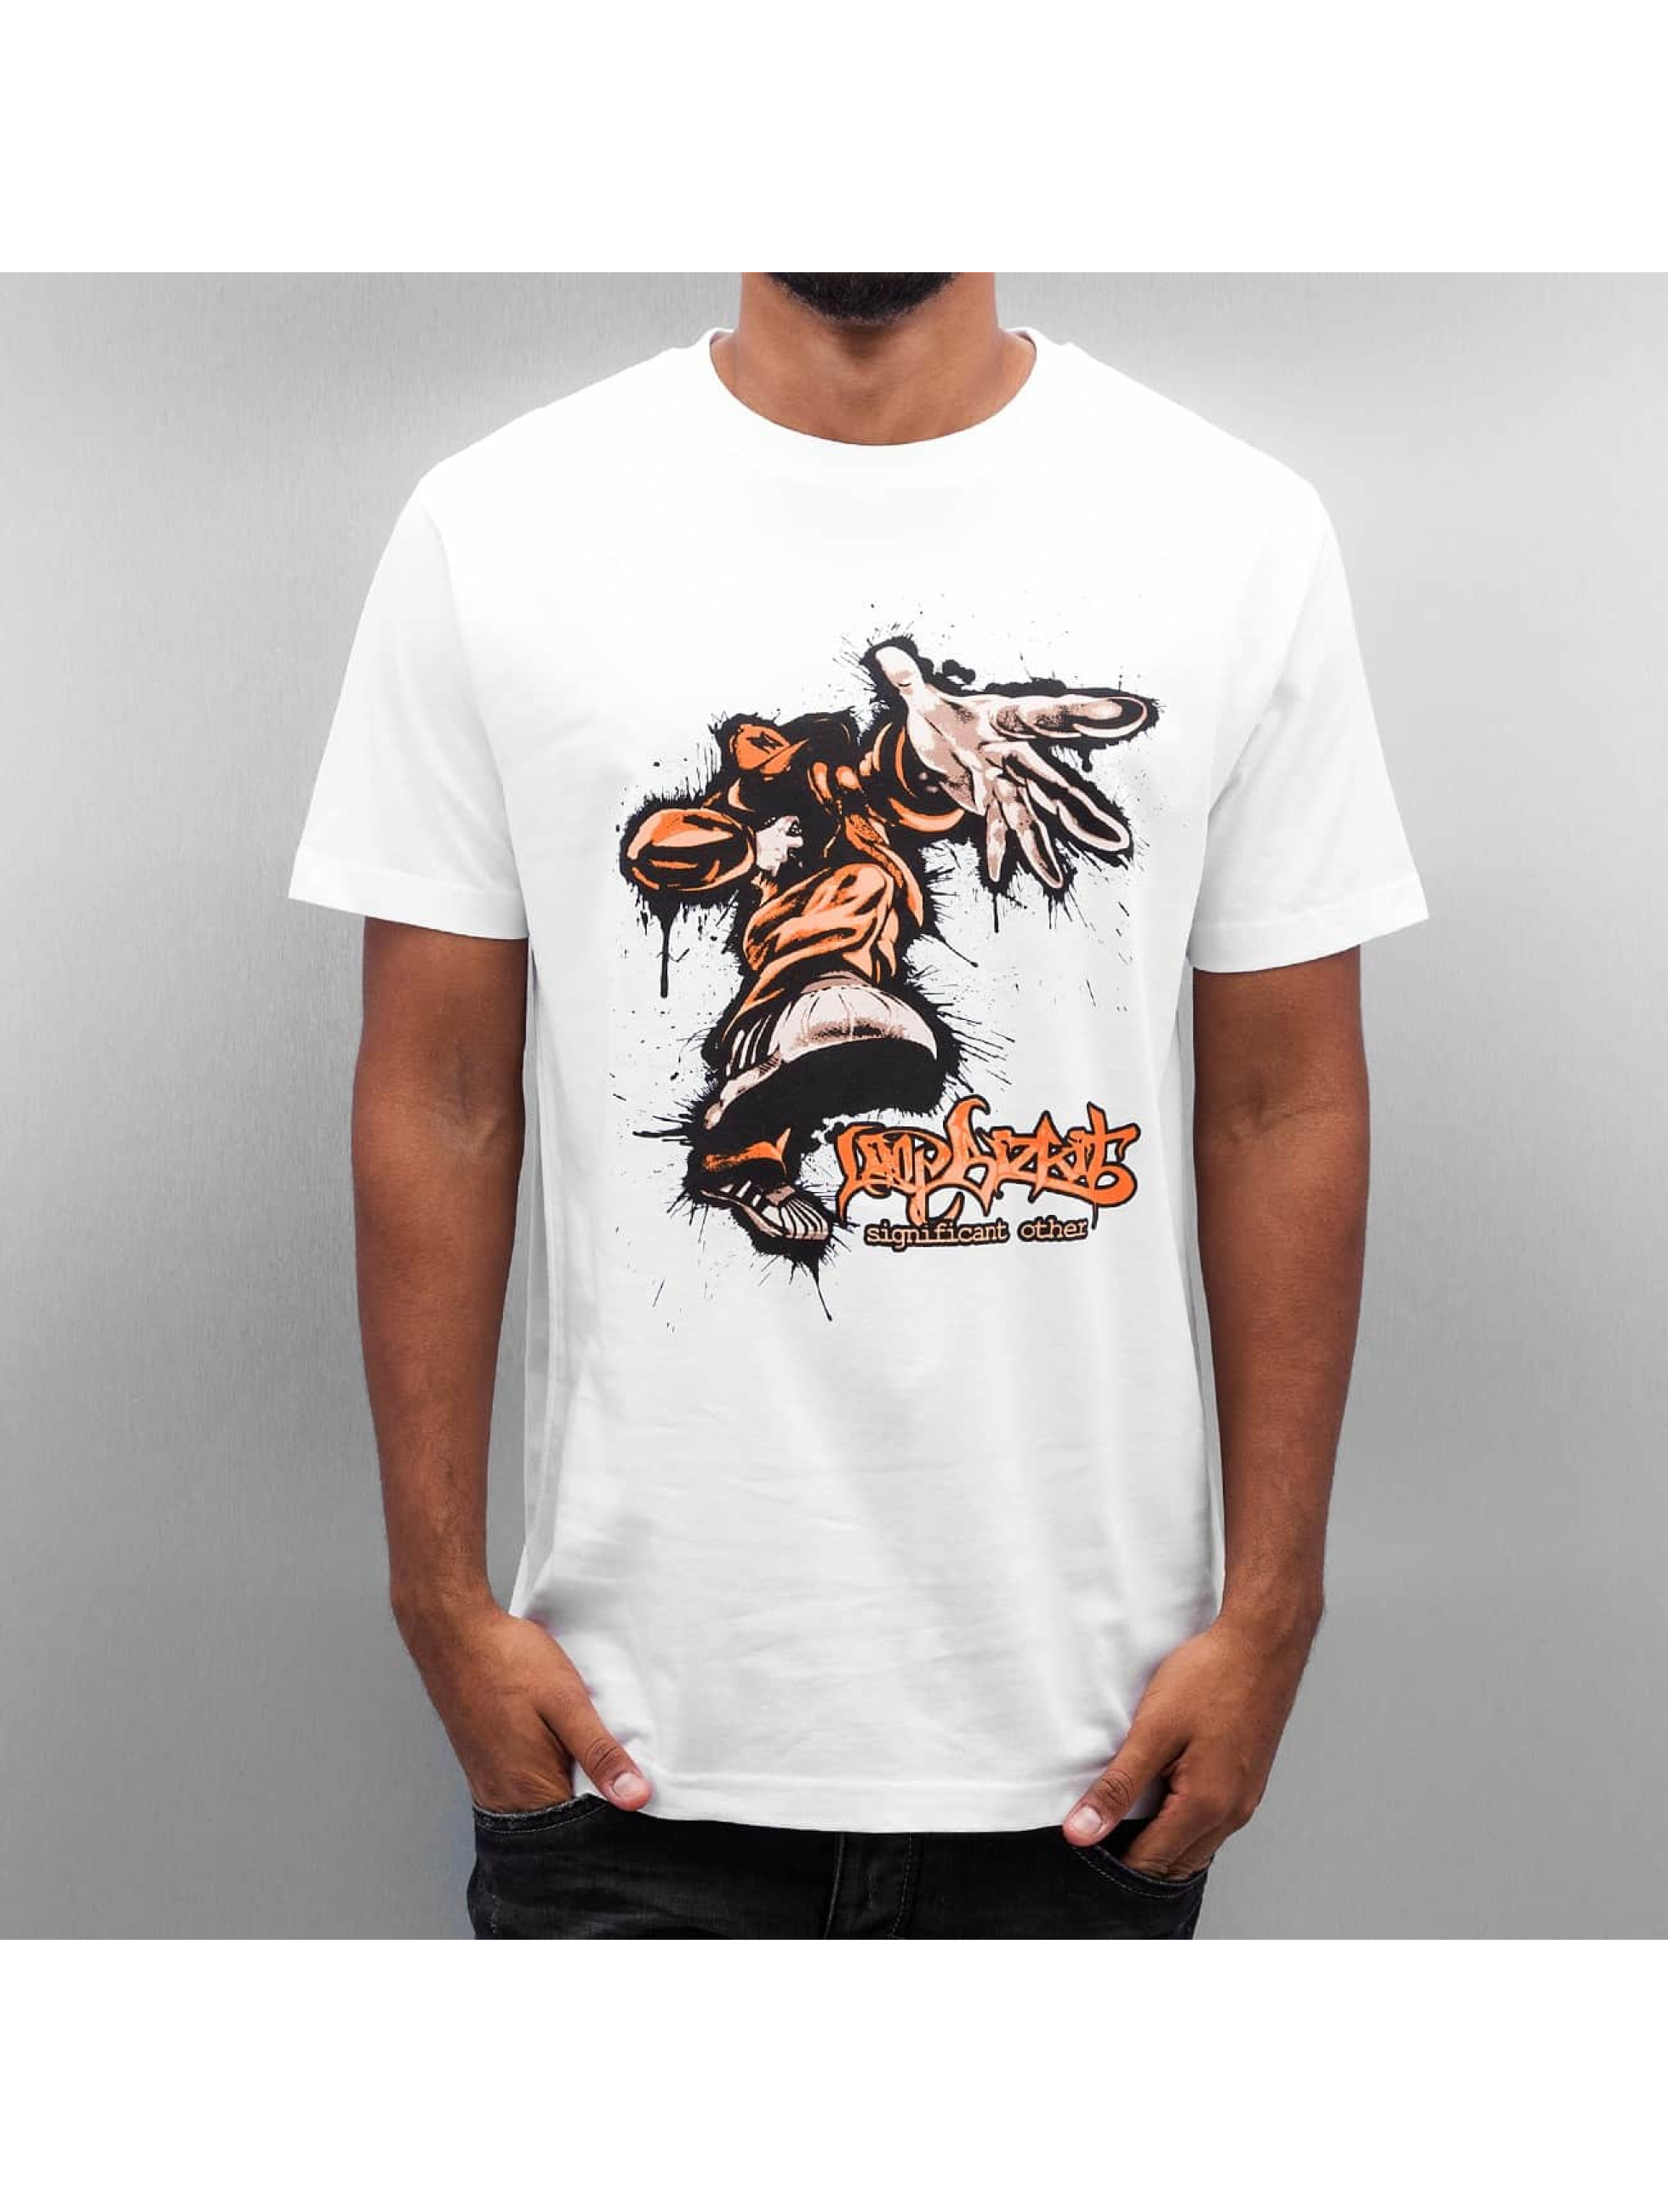 Mister Tee T-Shirt Limp Bizkit Significant Other white